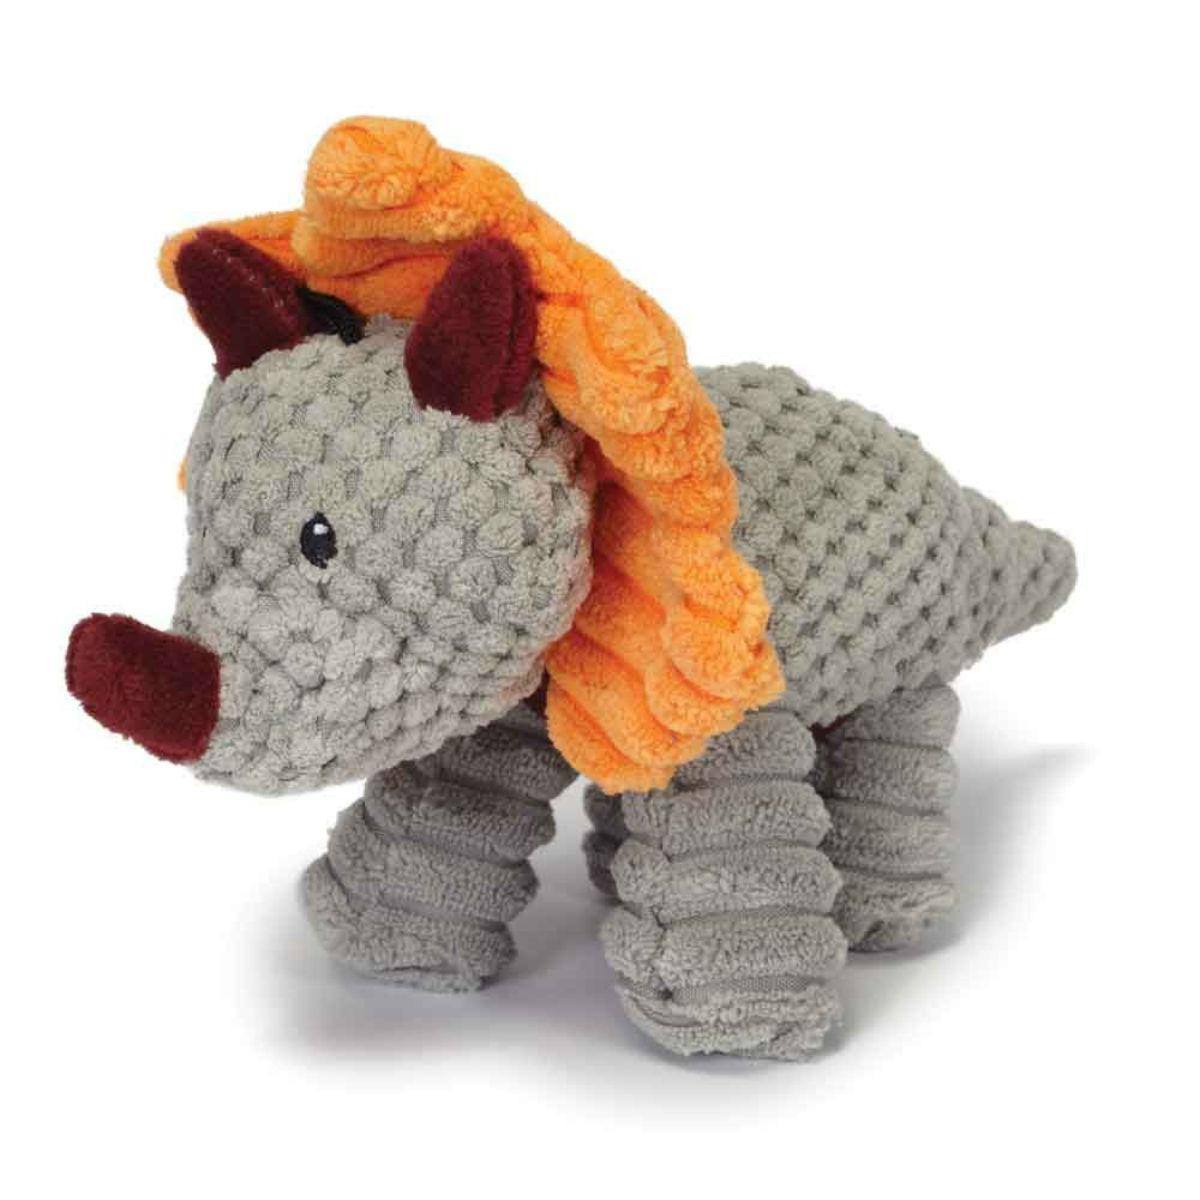 Play 365 Jurassic Cord Crew Triceratops Dog Toy - Gray